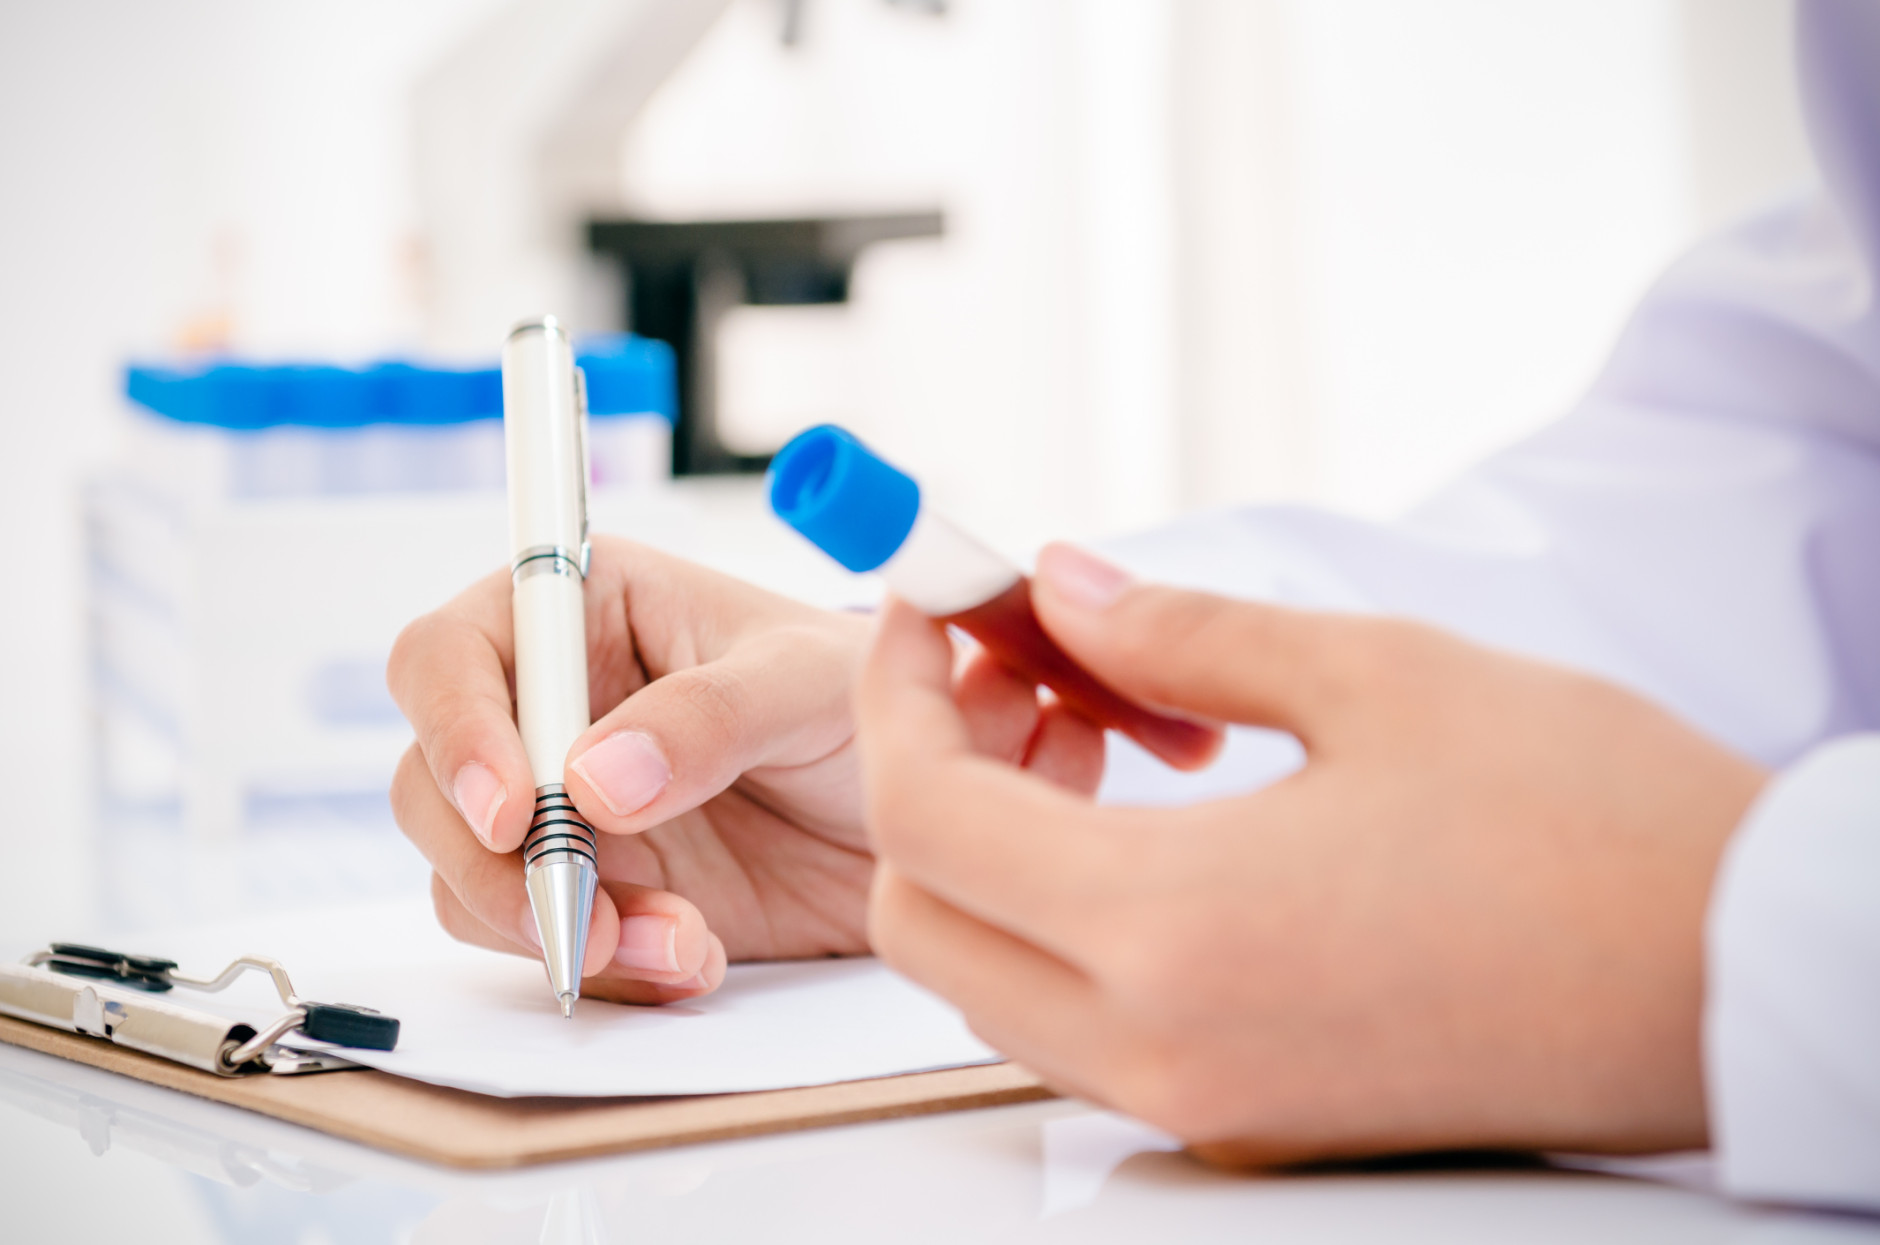 Blood test helps physicians diagnose patients' risk for